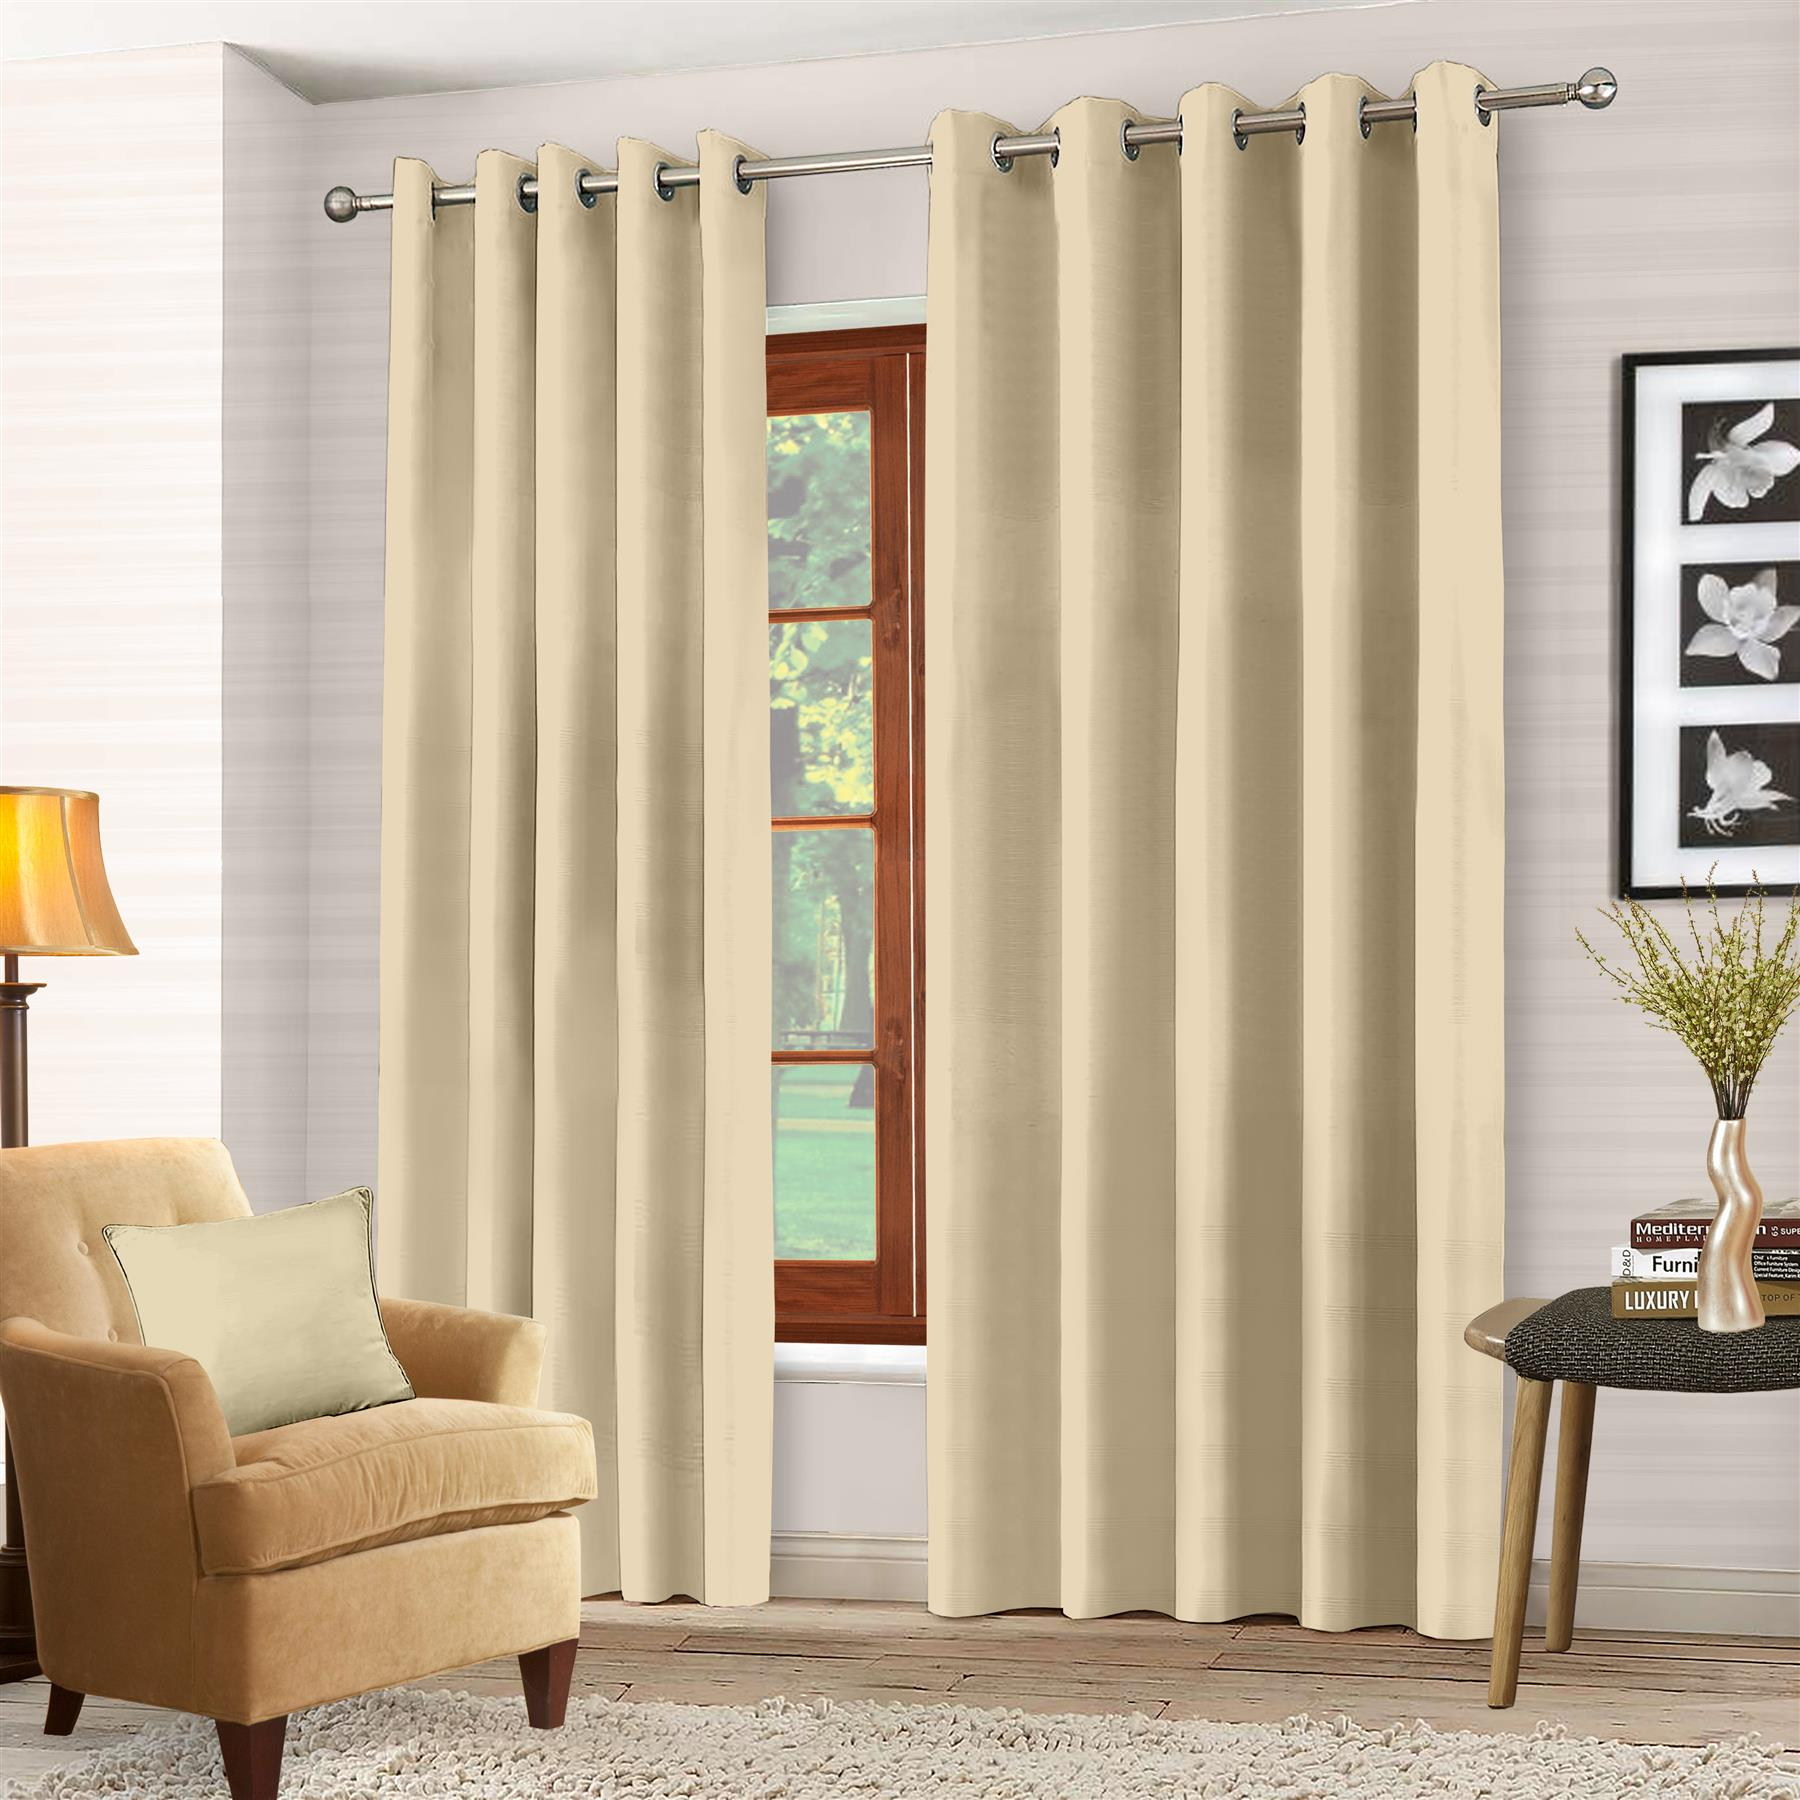 Luxury Thermal Blackout Eyelet Ring Top Curtains Pair With Tie Backs